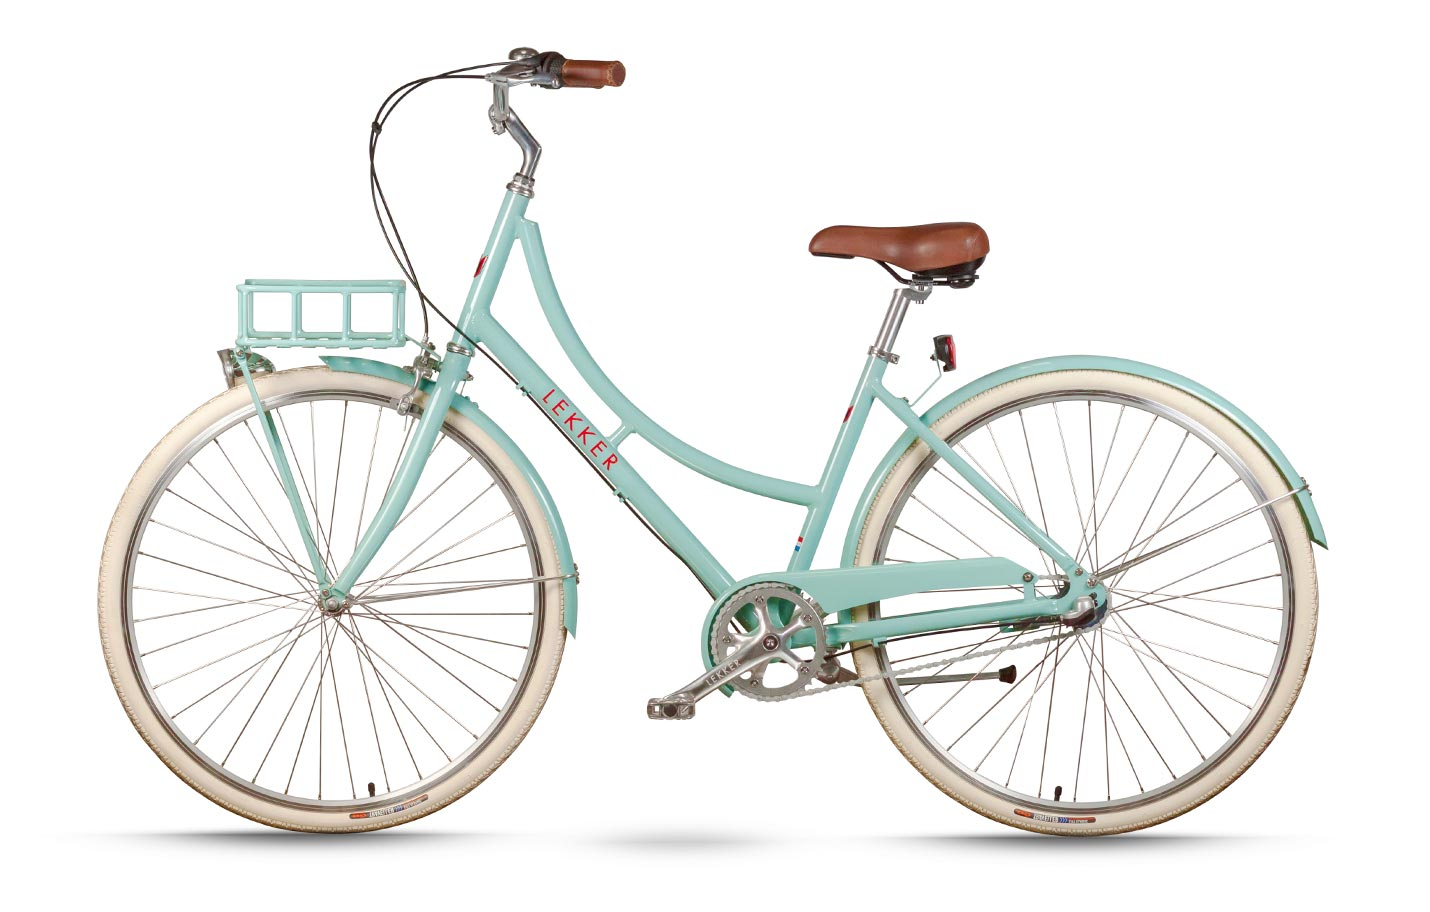 Shop Premium Dutch Bikes Retro Vintage Style By Lekker Bikes